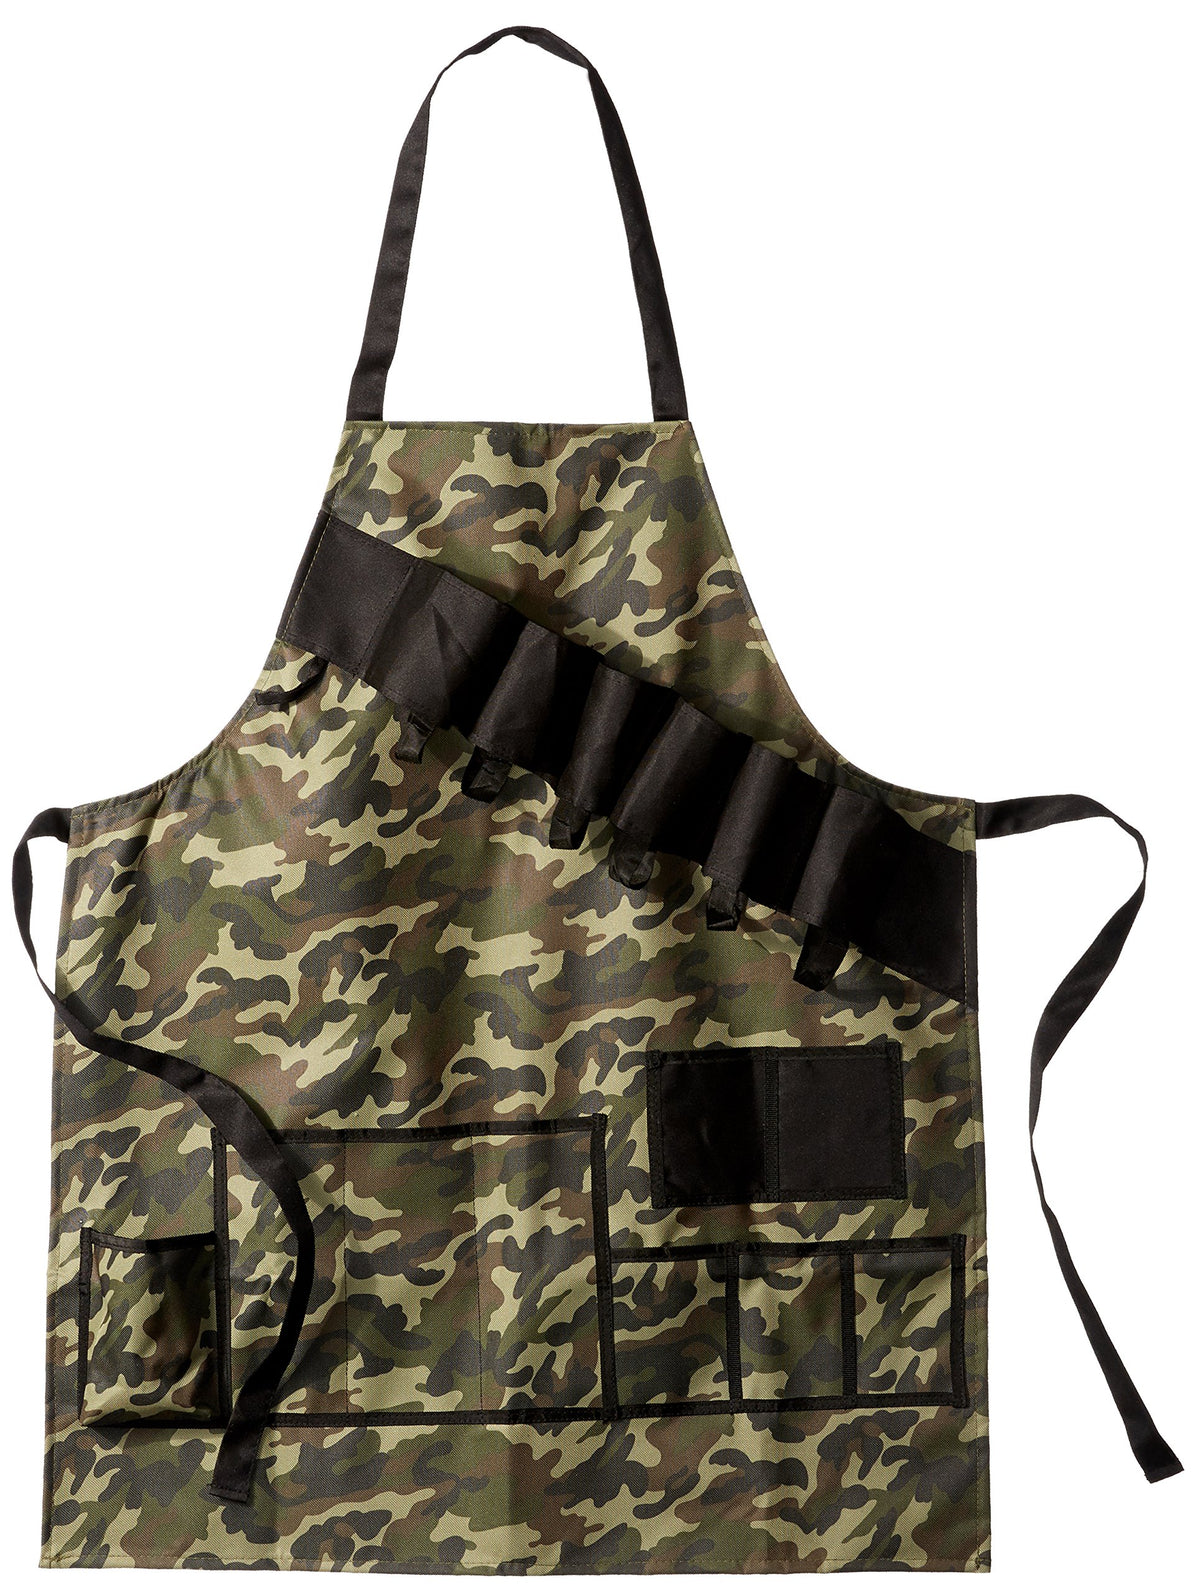 Grill Master Grill Apron and Accessory Holds Beverages and Tools, Camouflage